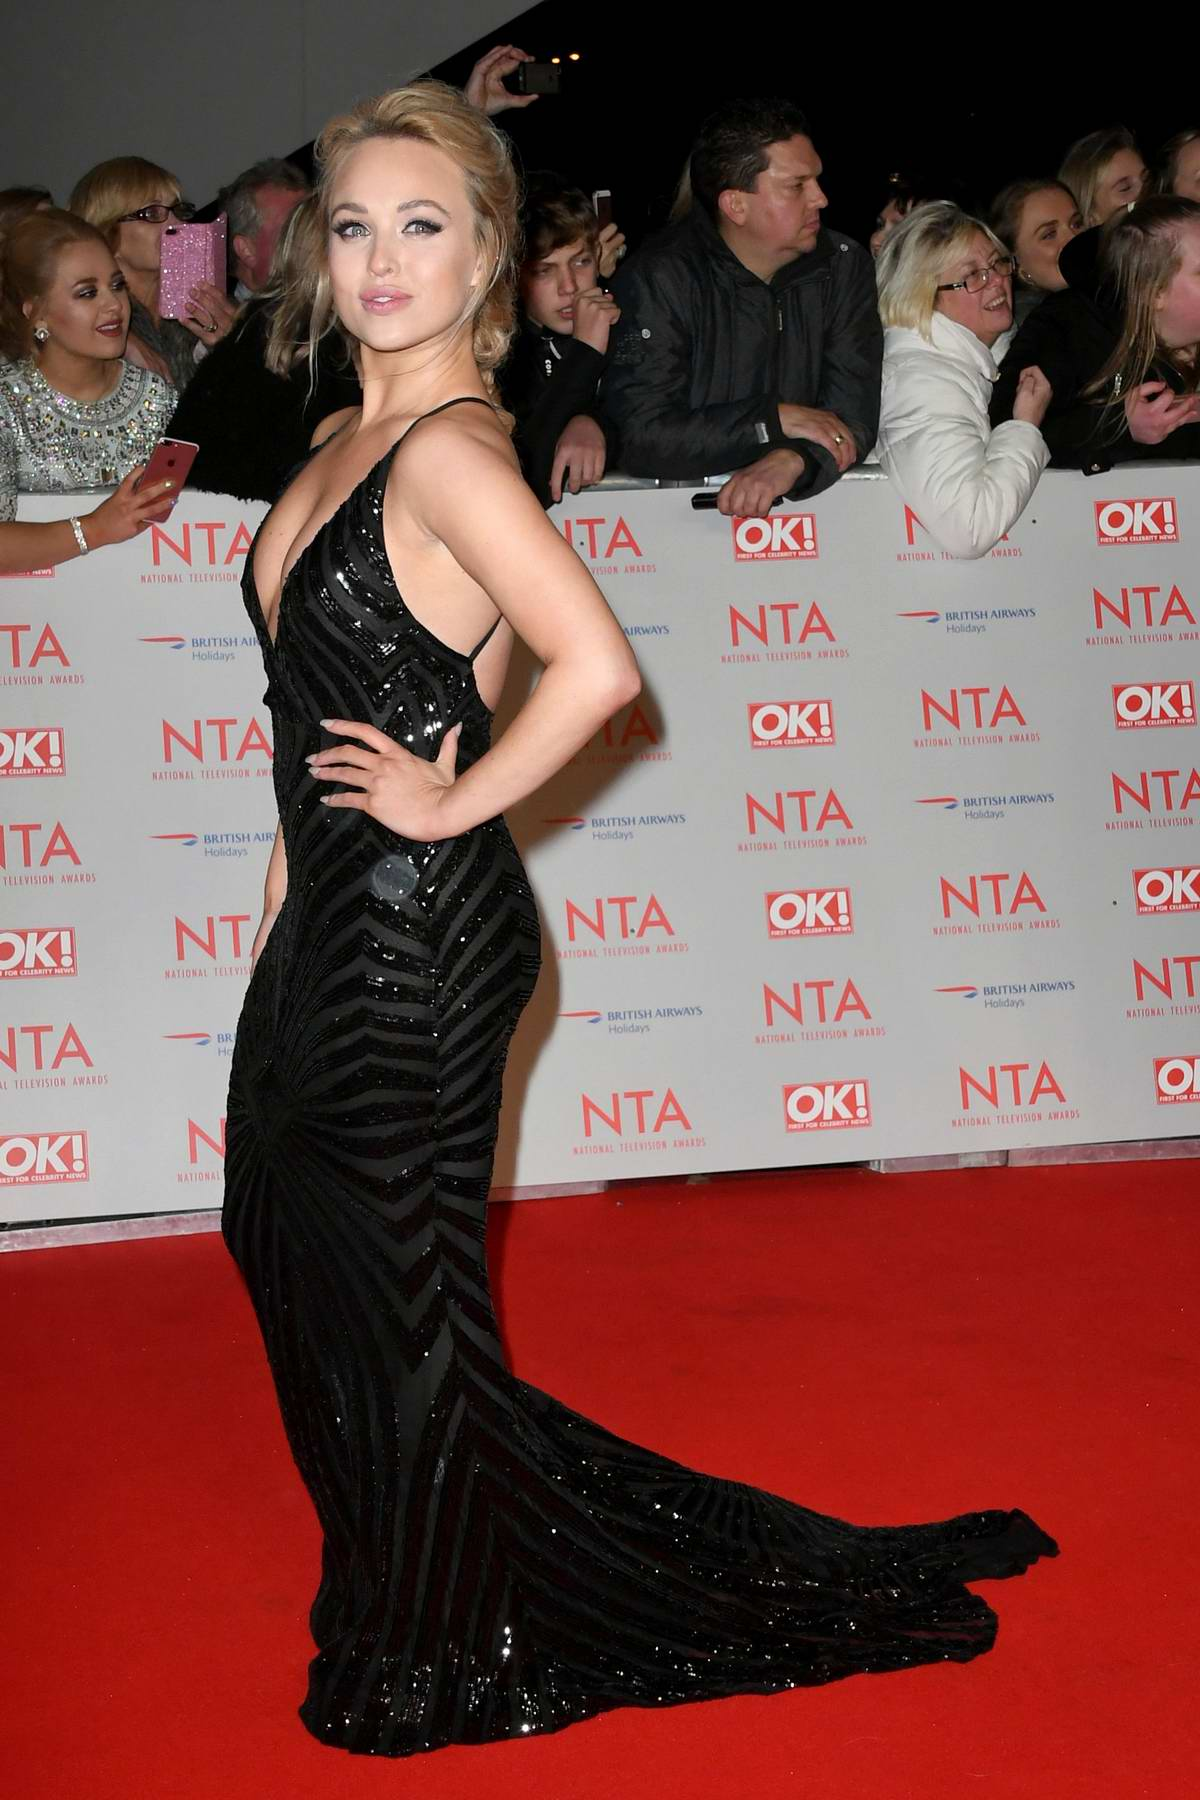 Jorgie Porter attends National Television Awards at The O2 Arena in London